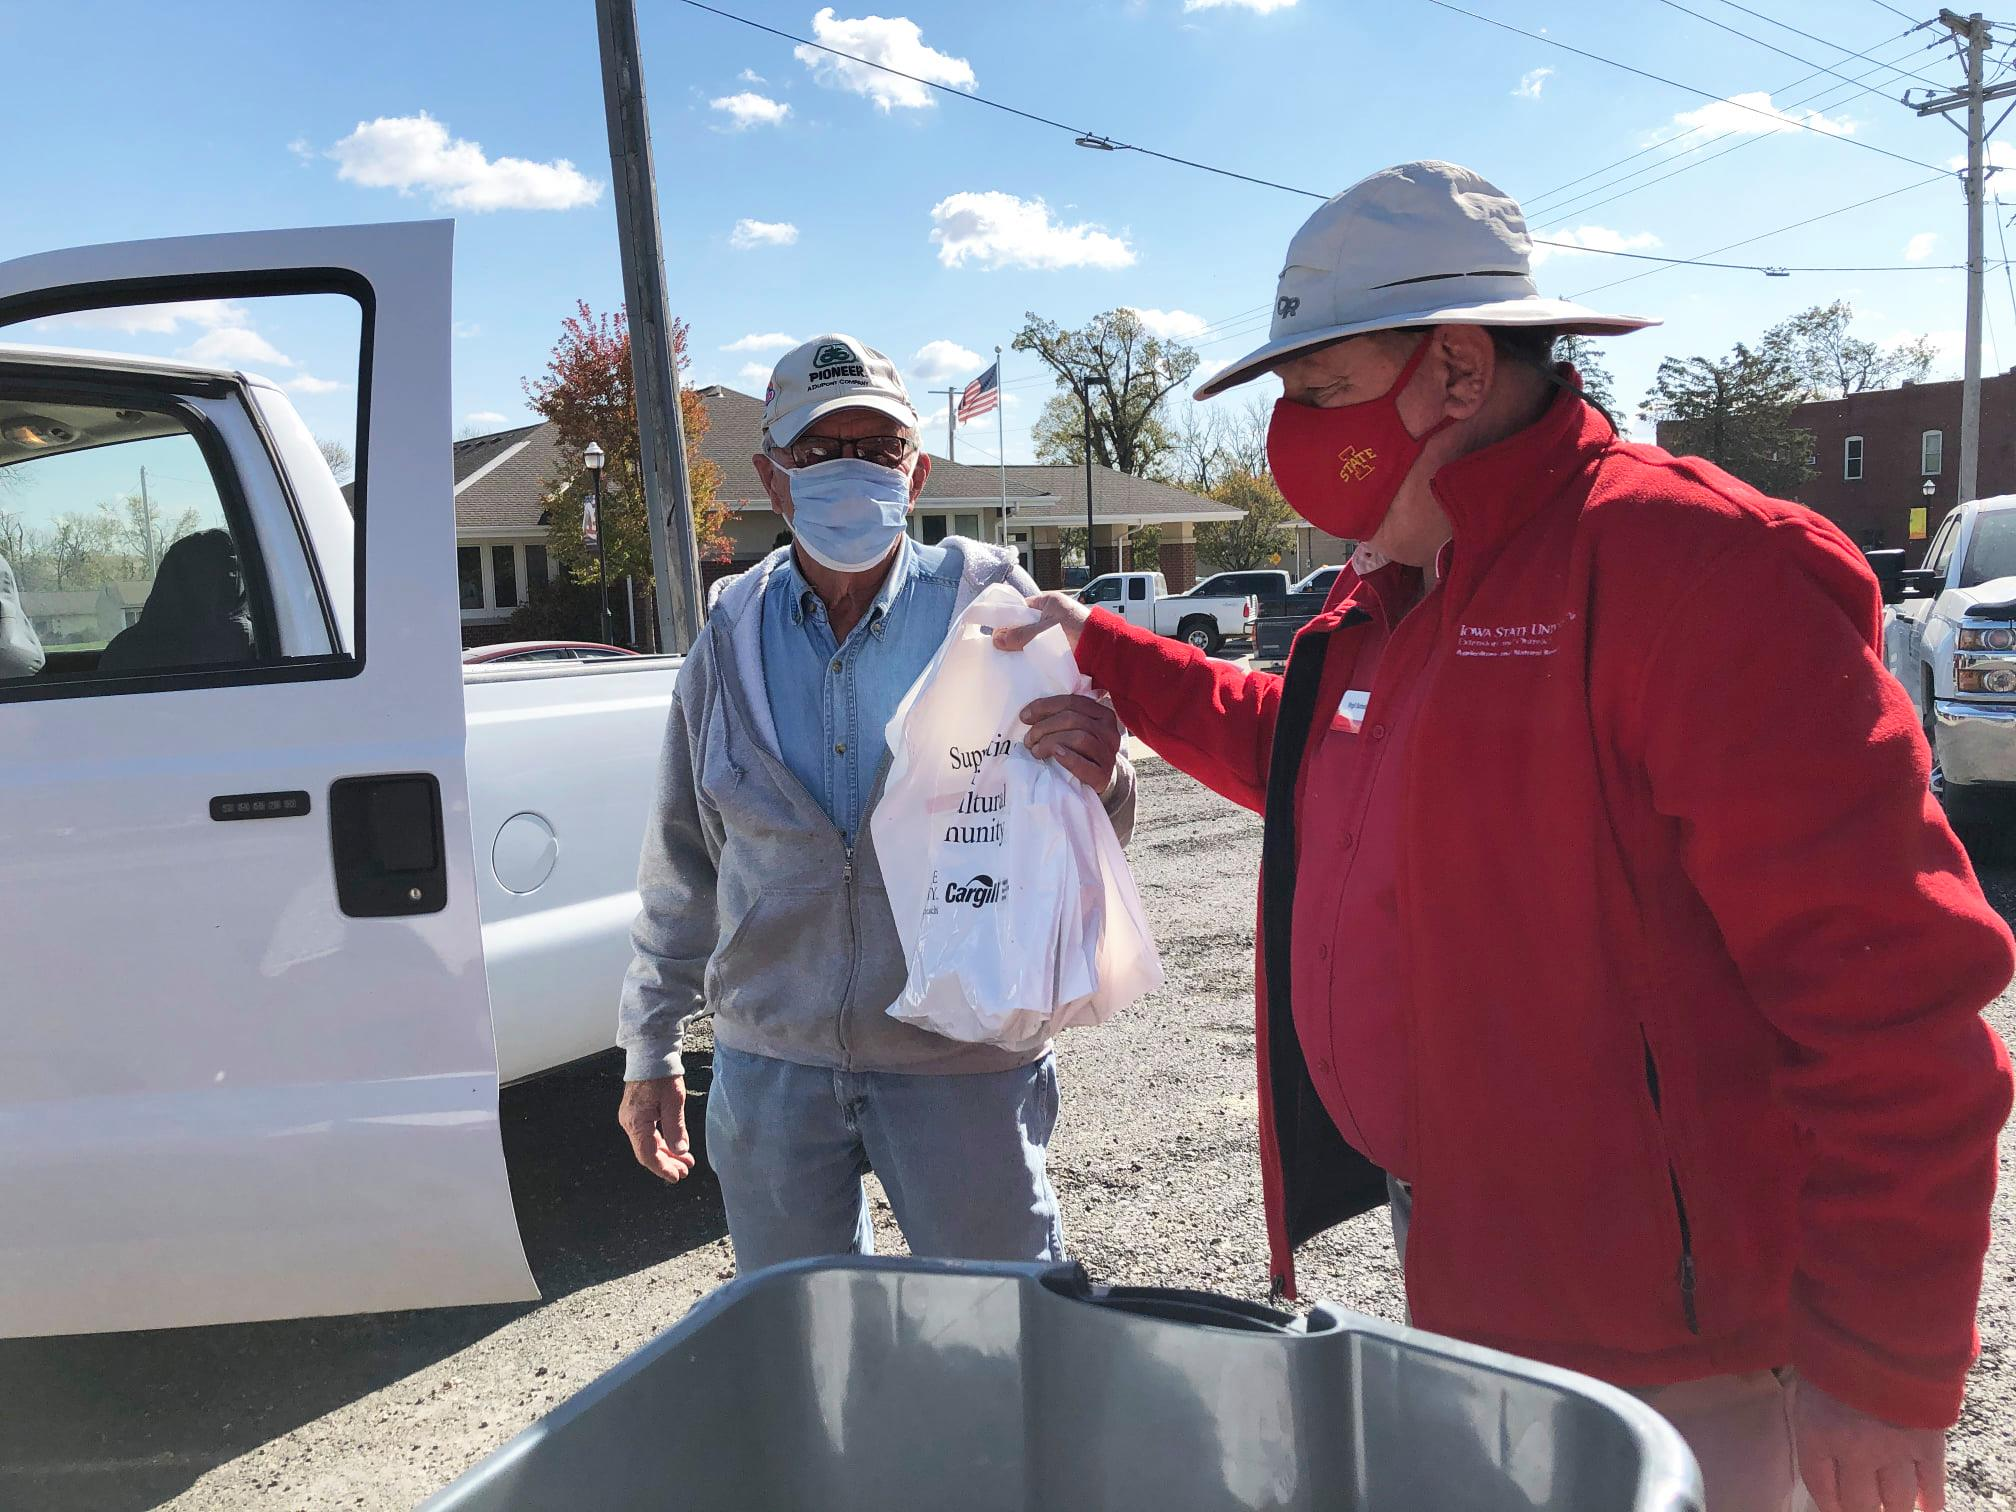 Supporting Iowa Farmers, One Meal At A Time